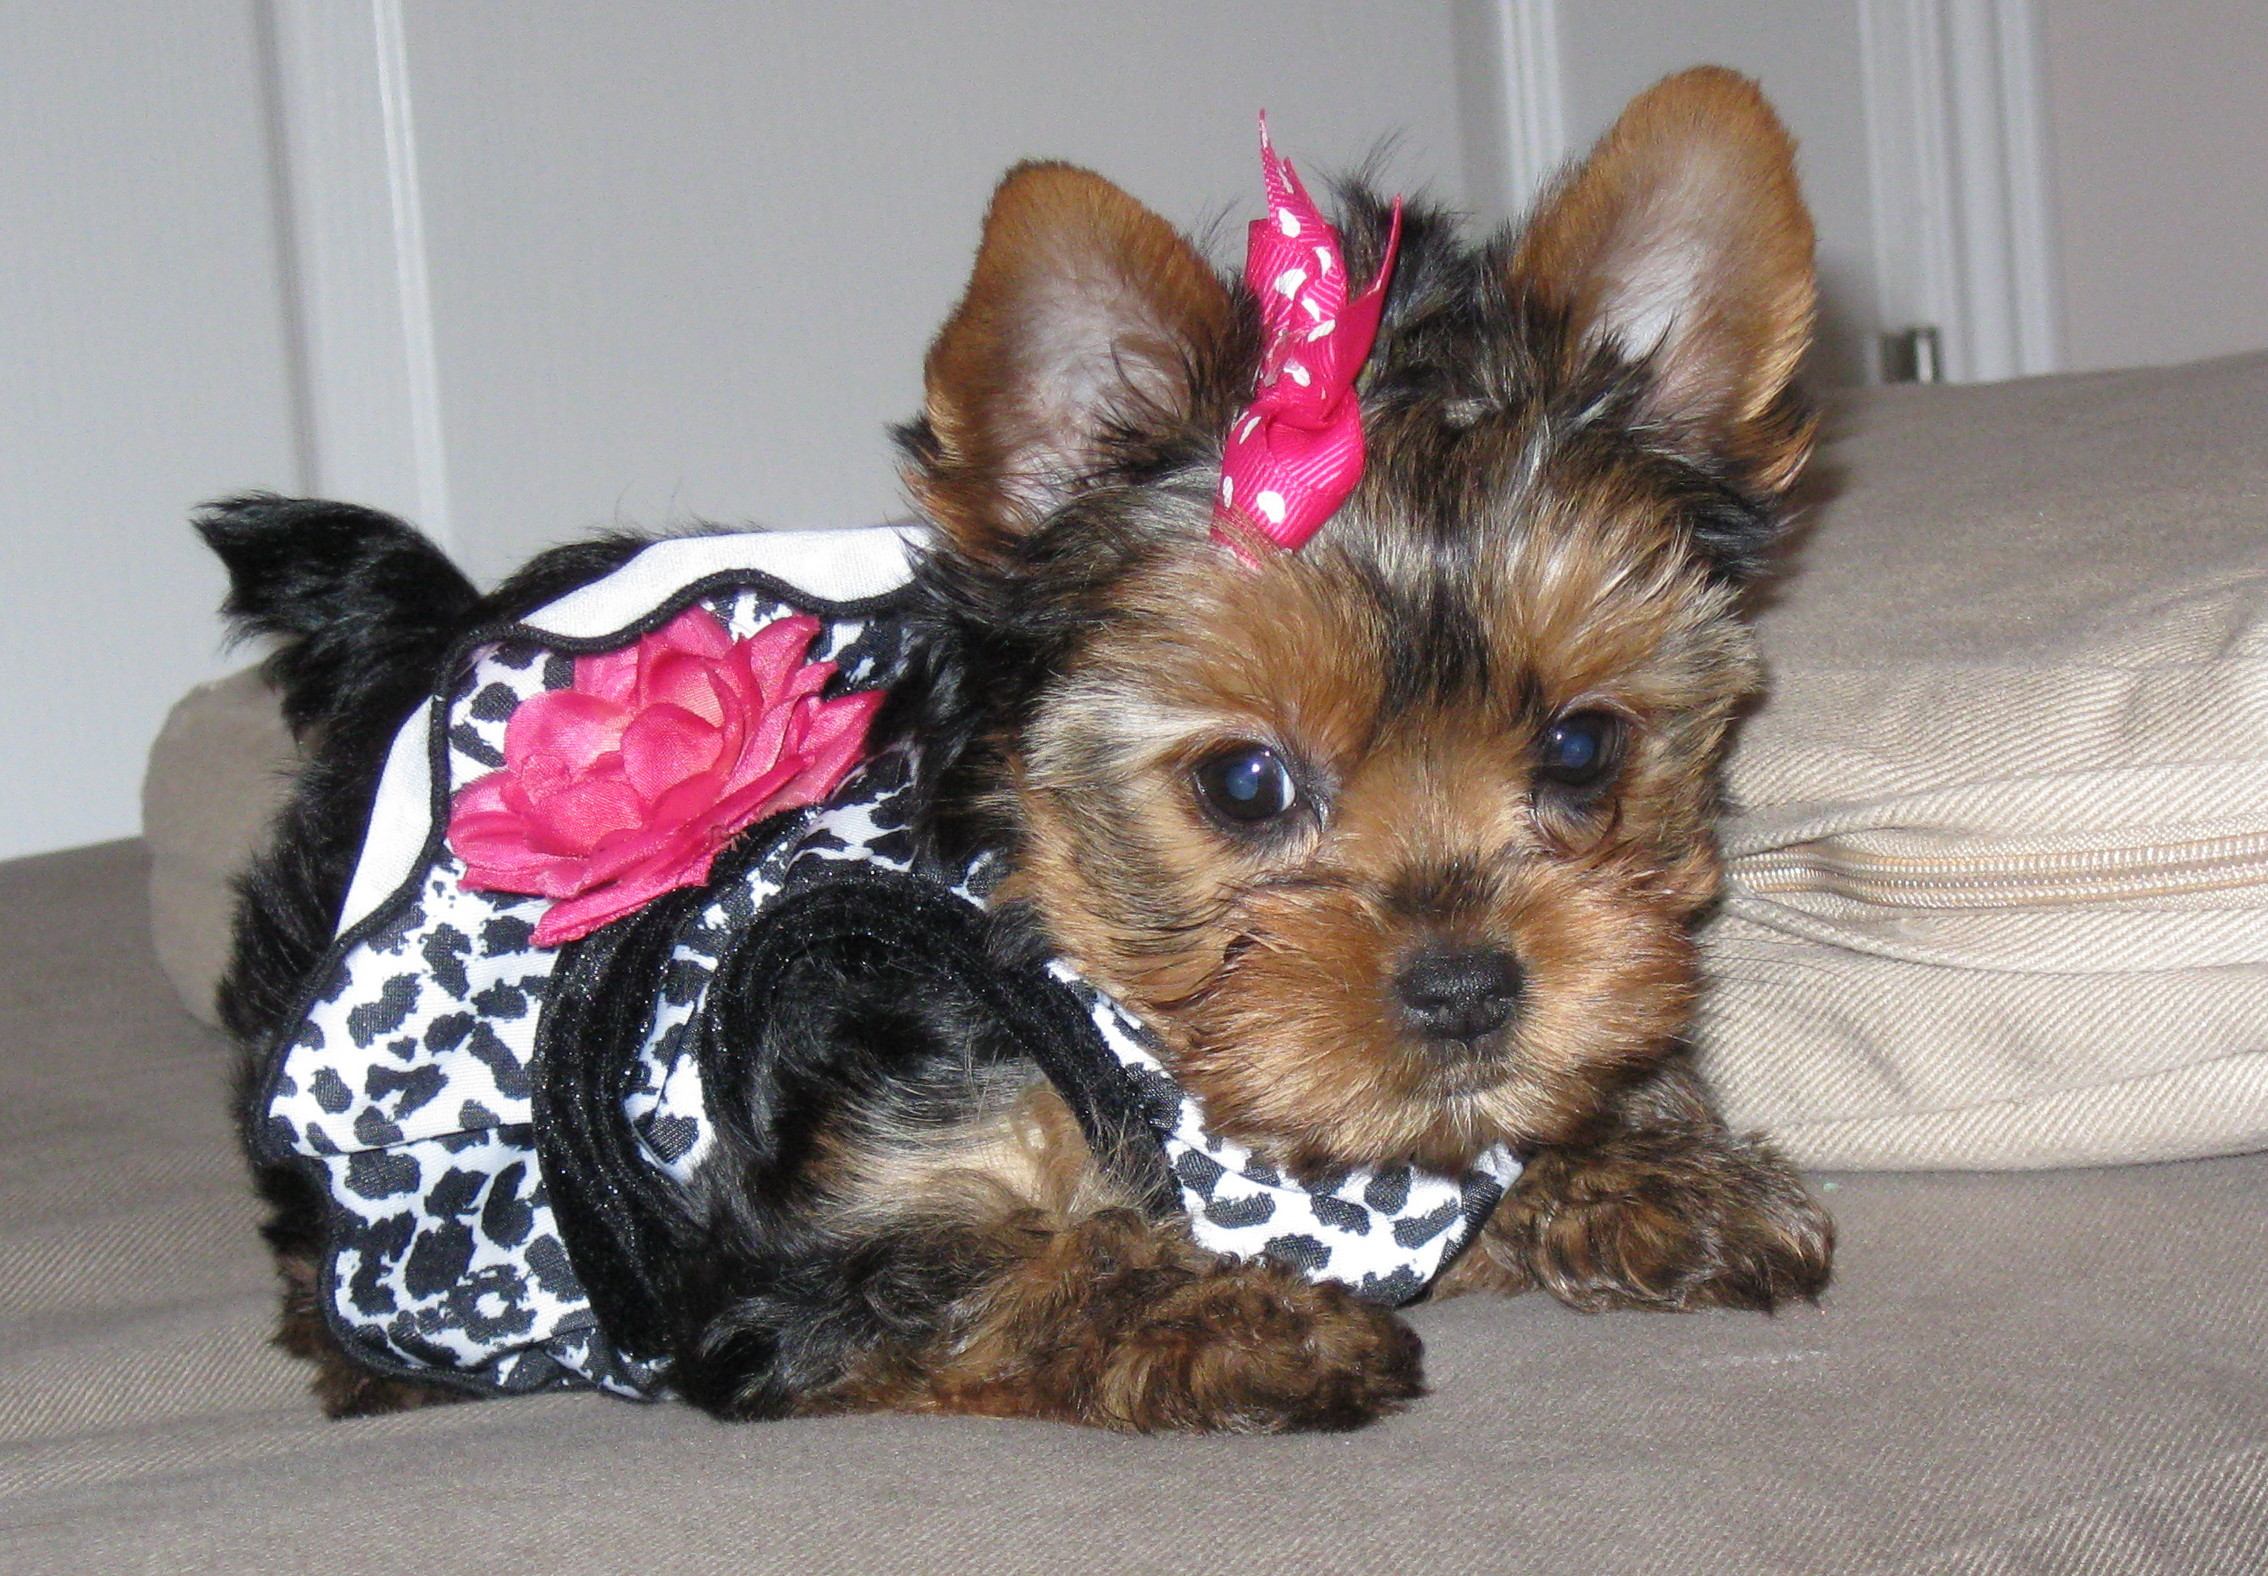 2268x1576 yorkie and yorkshire terrier 168 - Yorkie And Yorkshire Terrier